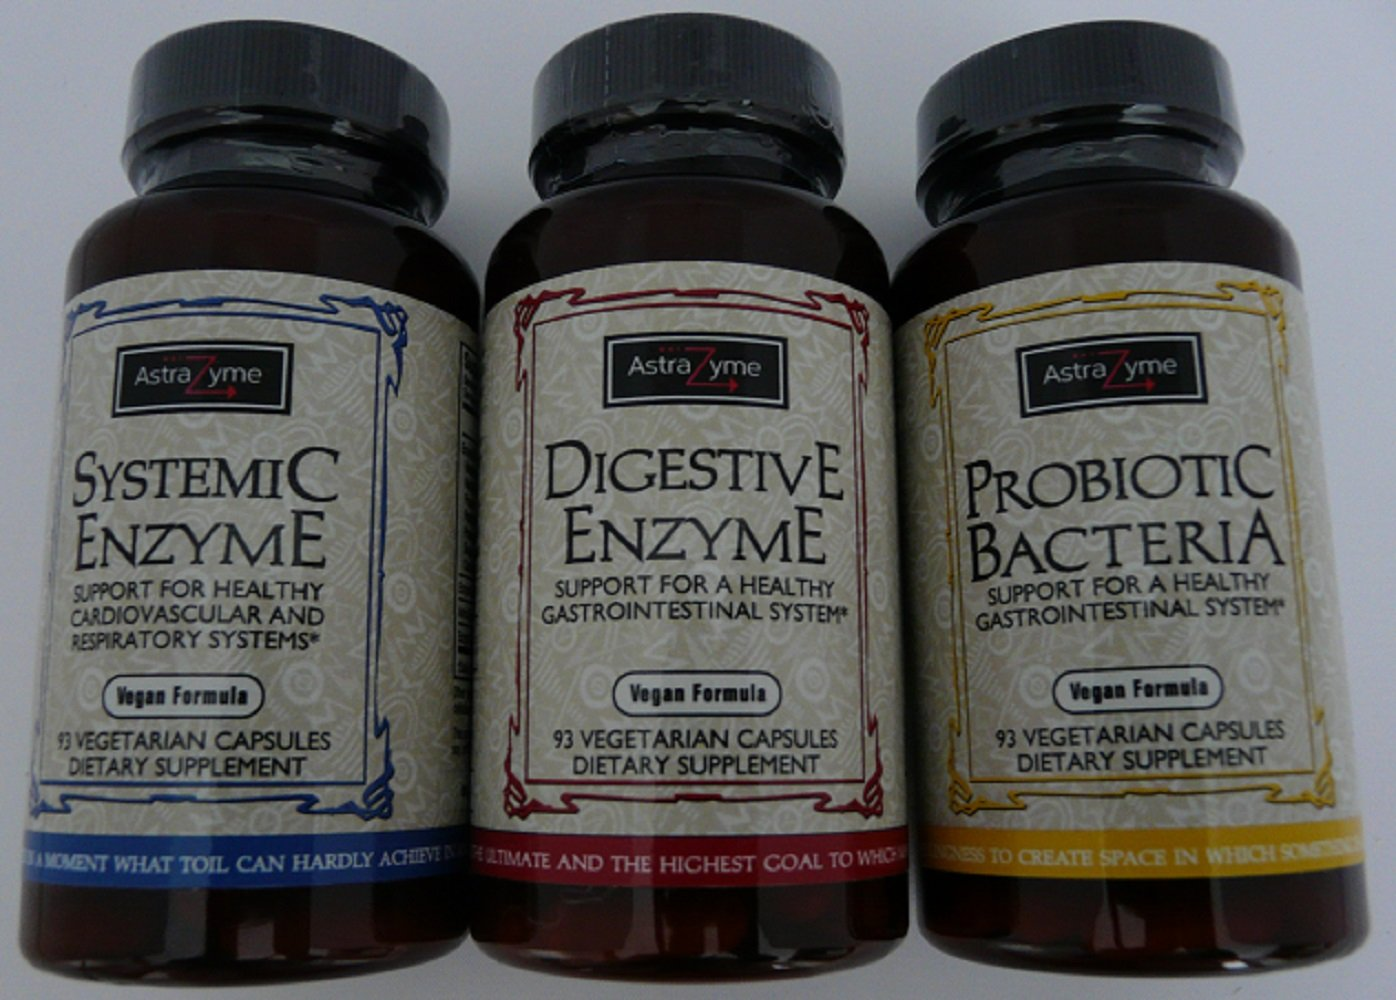 AstraZyme BEST Systemic Enzyme+Probiotics+Digestive Enzyme-3 Powerful Supplements-SALE-Vegan-Vegetarian-Gluten FREE-Plant Base-Natural-NO FILLER-Color-Flavor-Nut-Yeast-Dairy-Soy-Egg-Fish-PRESERVATIVE!